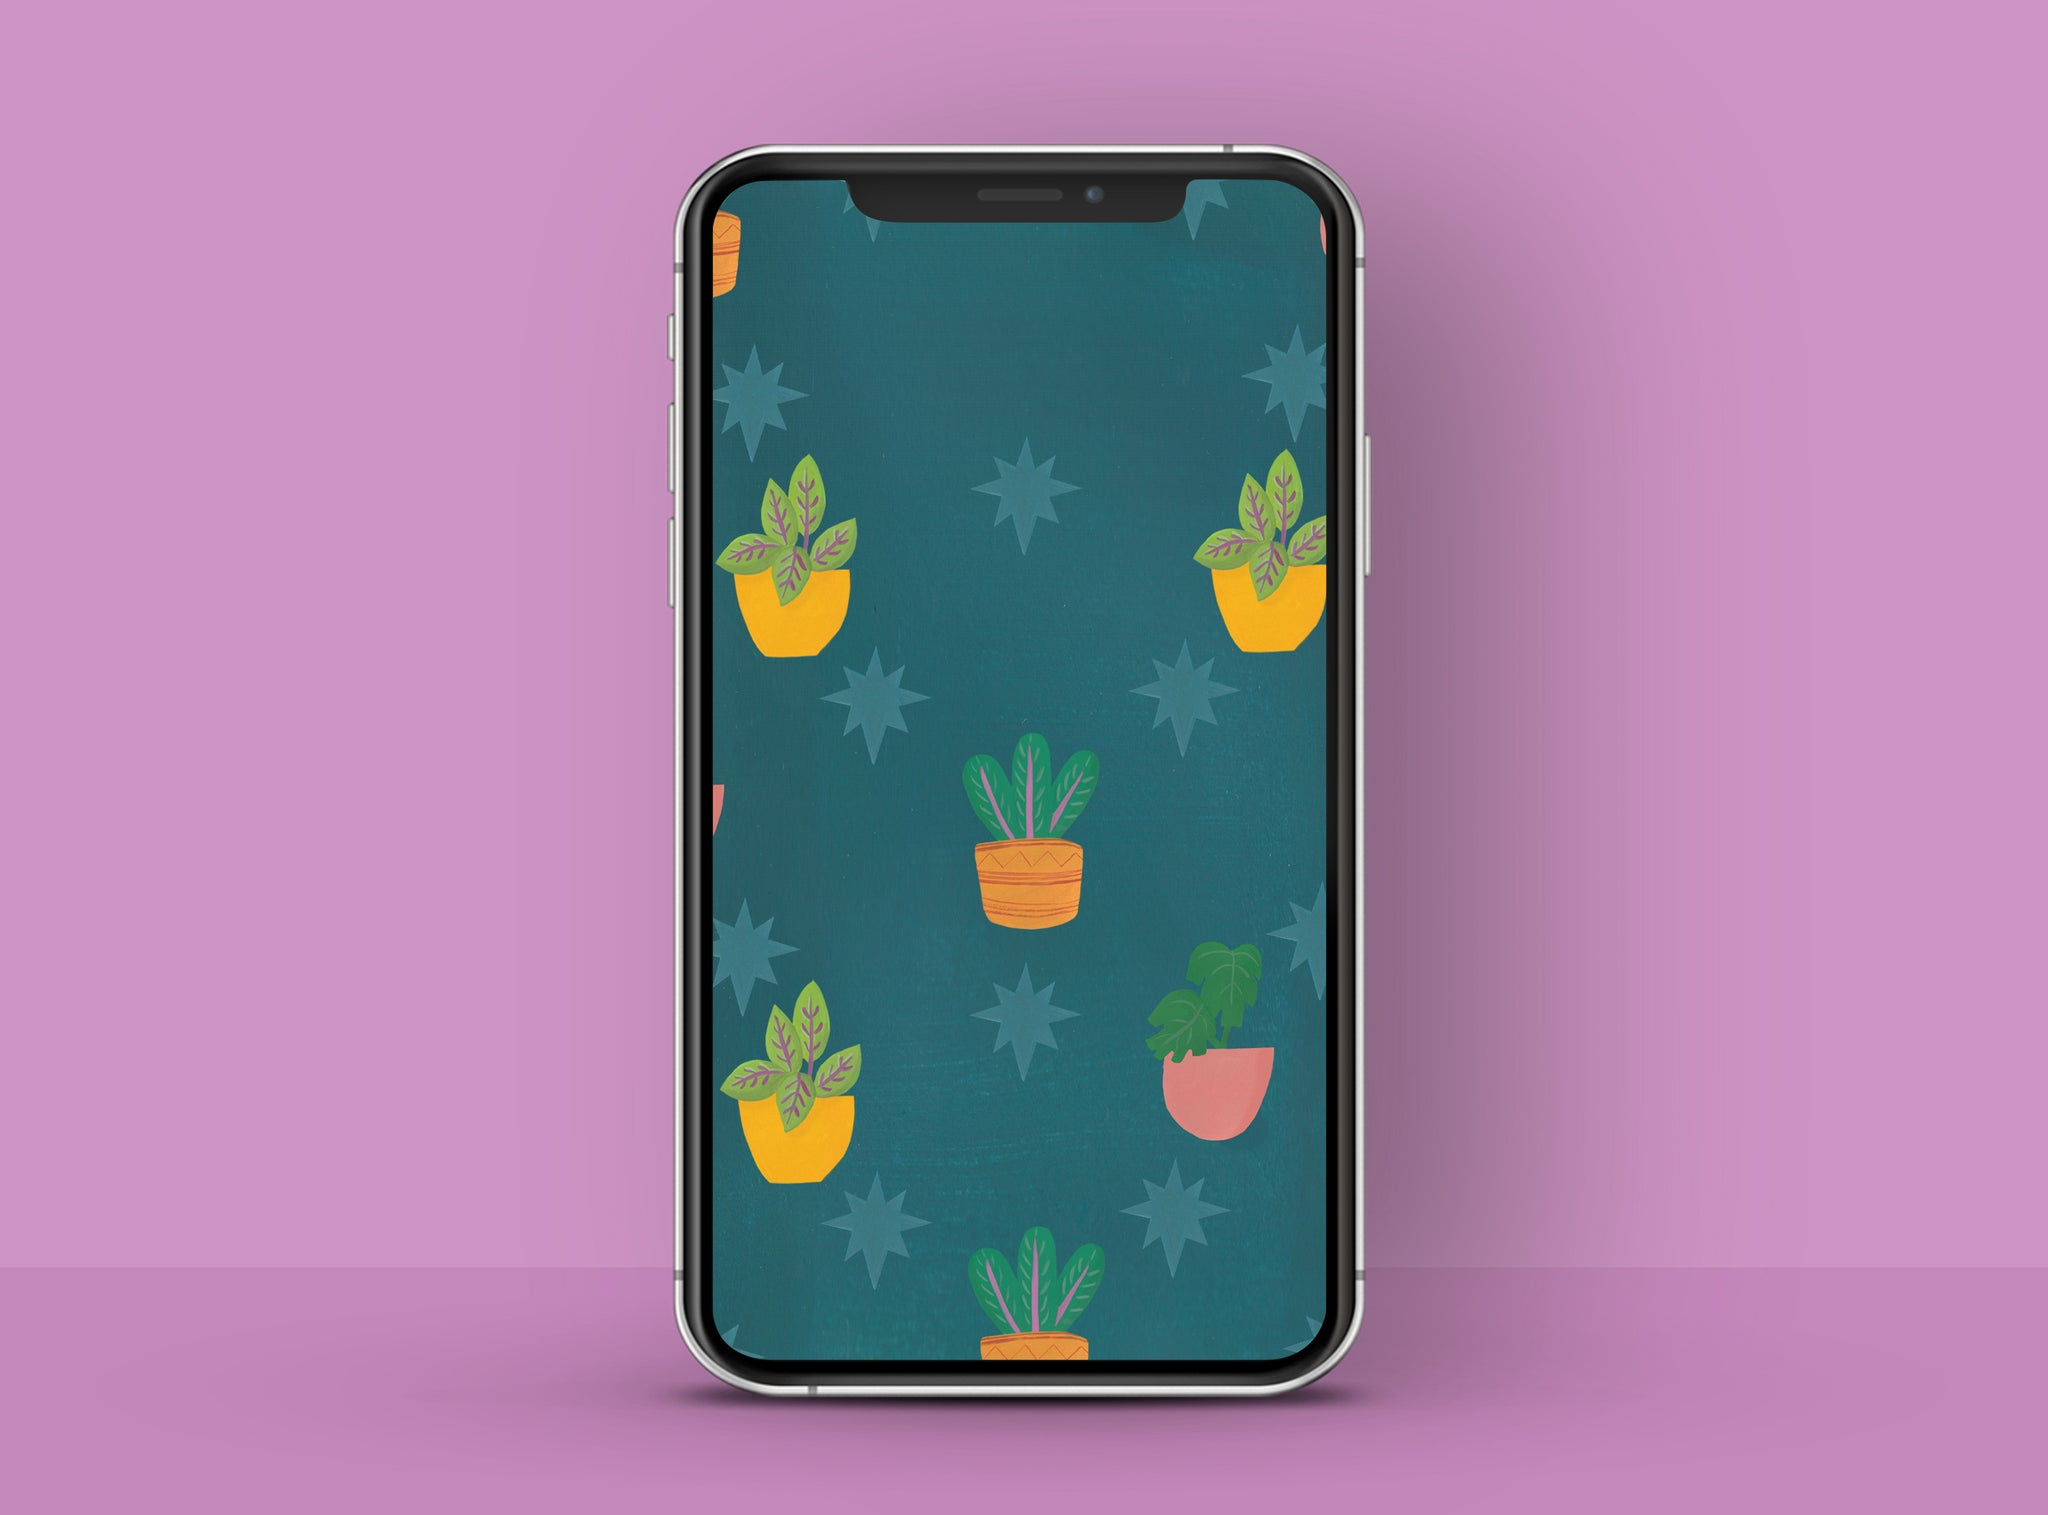 Colourful illustrated plant pattern, free HD phone wallpaper | Raspberry Blossom